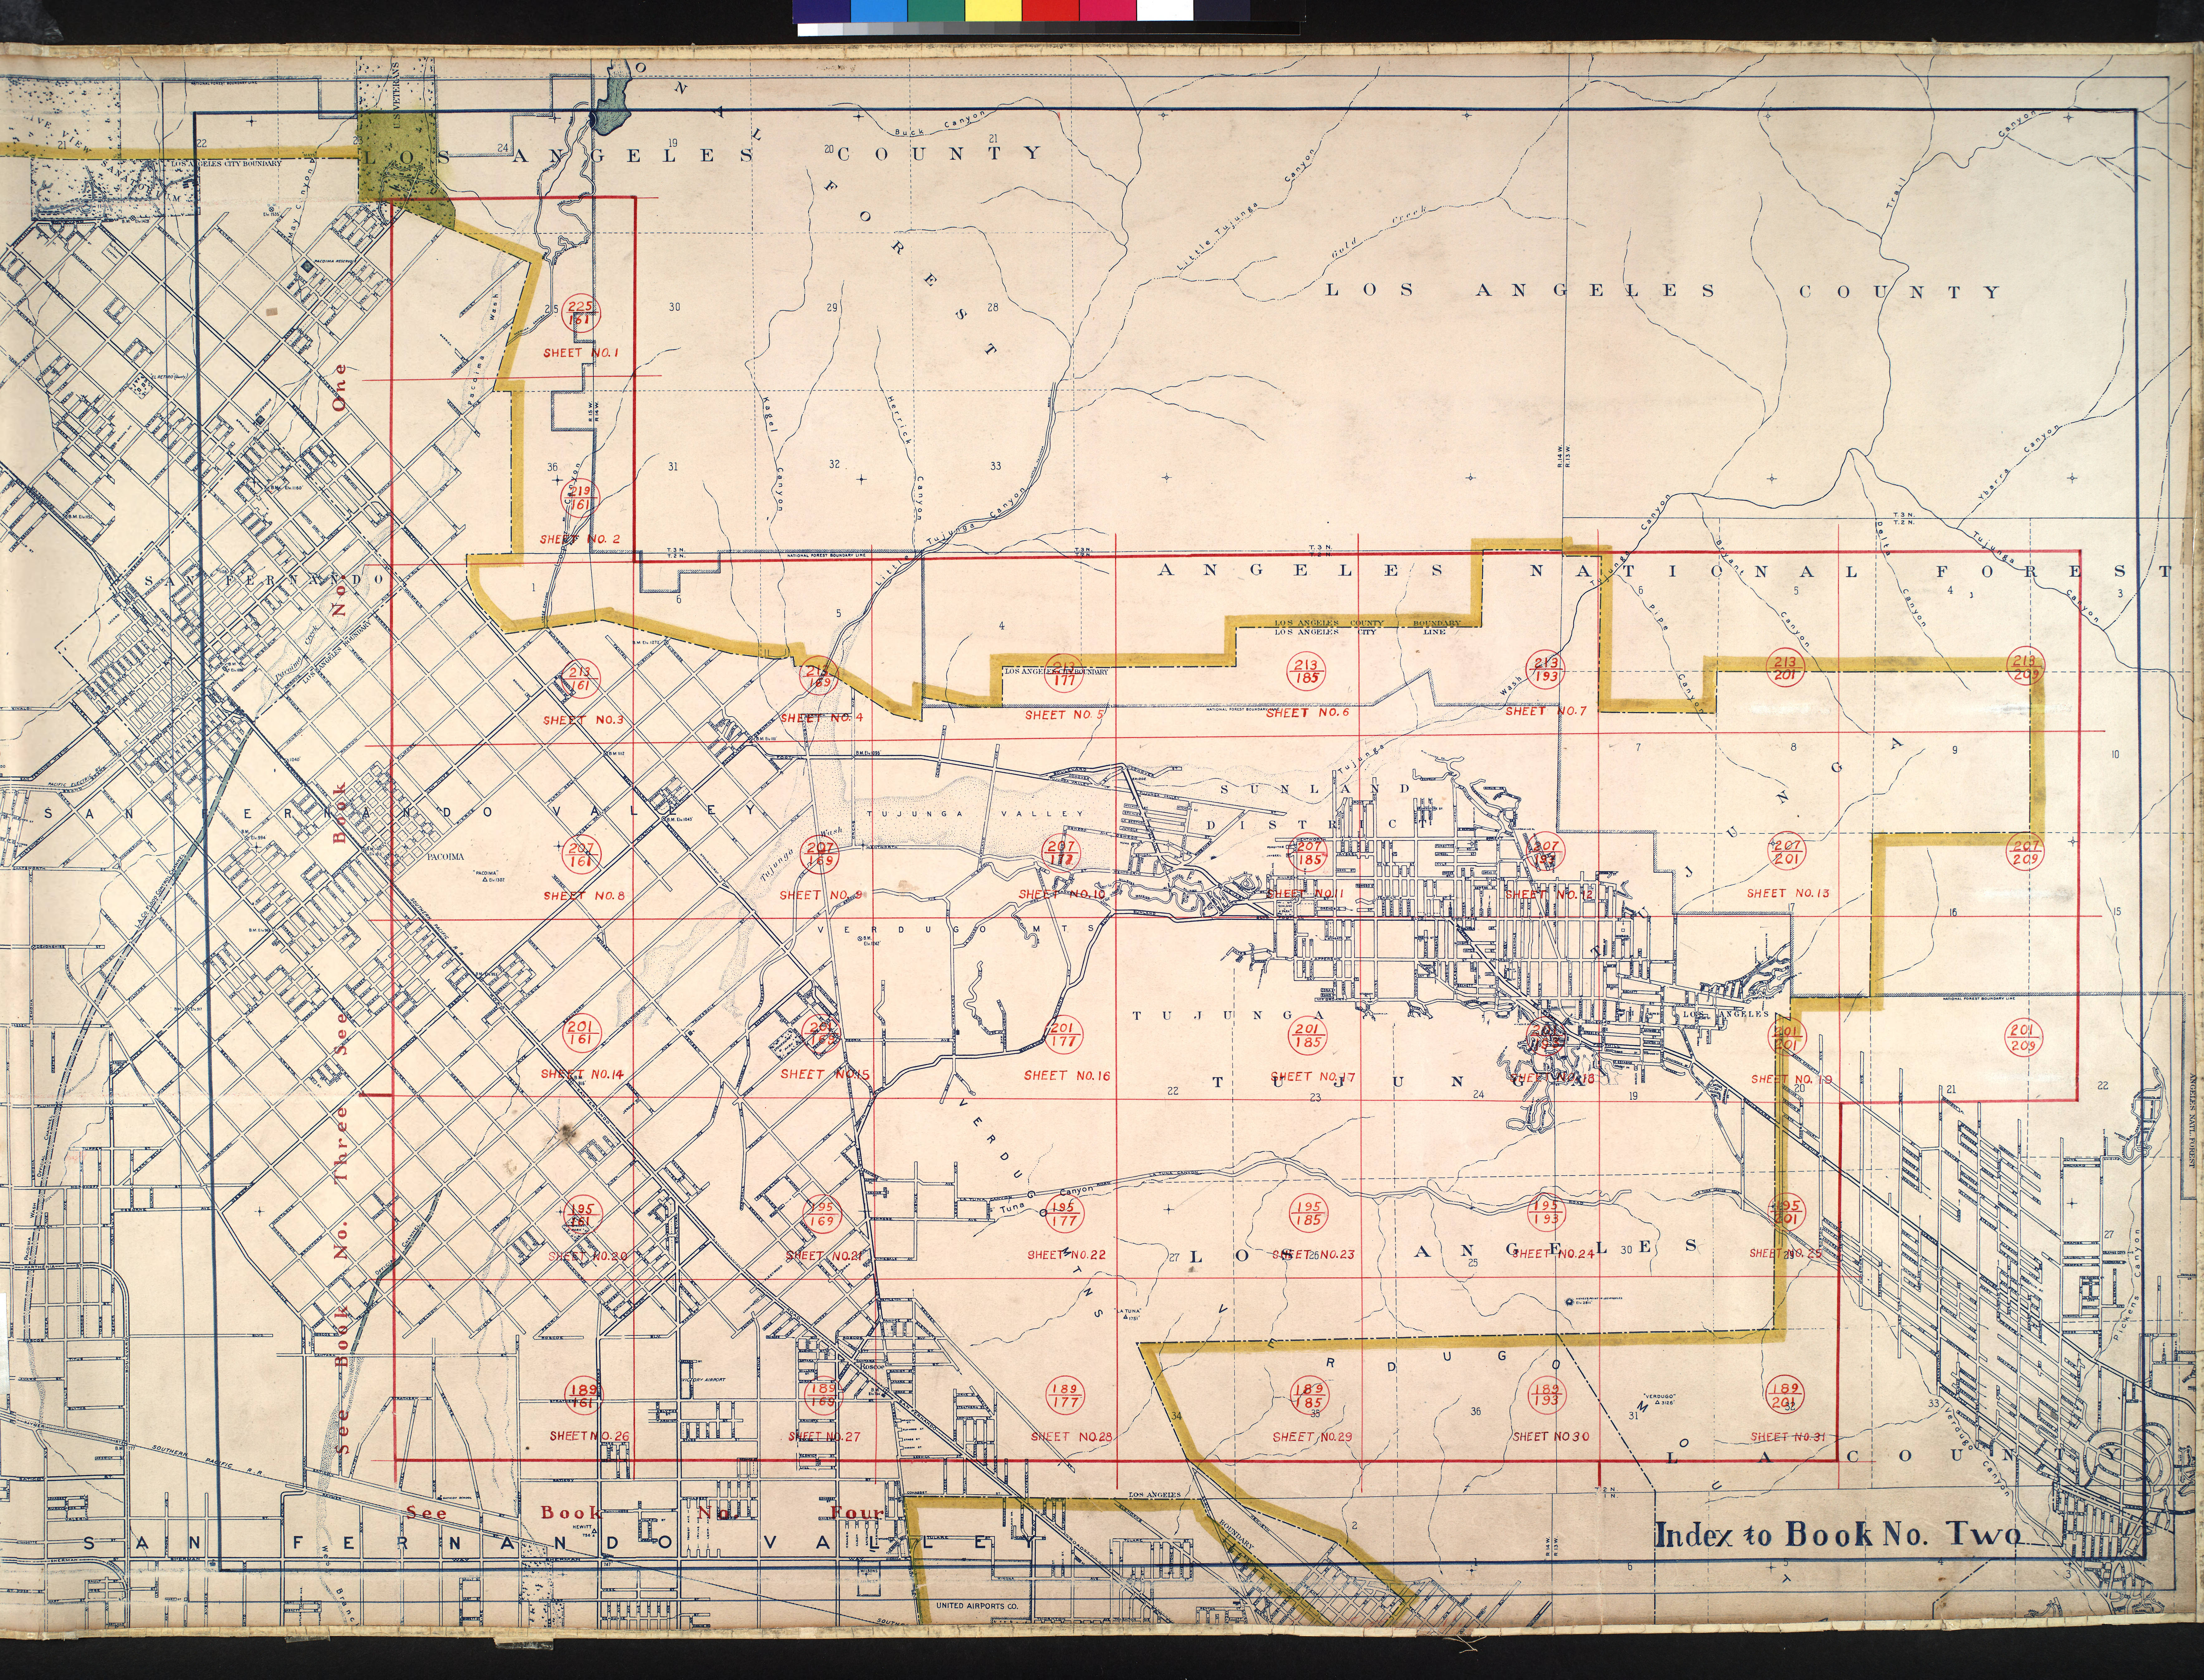 FileWPA Land Use Survey Map For The City Of Los Angeles Book - Los angeles va map